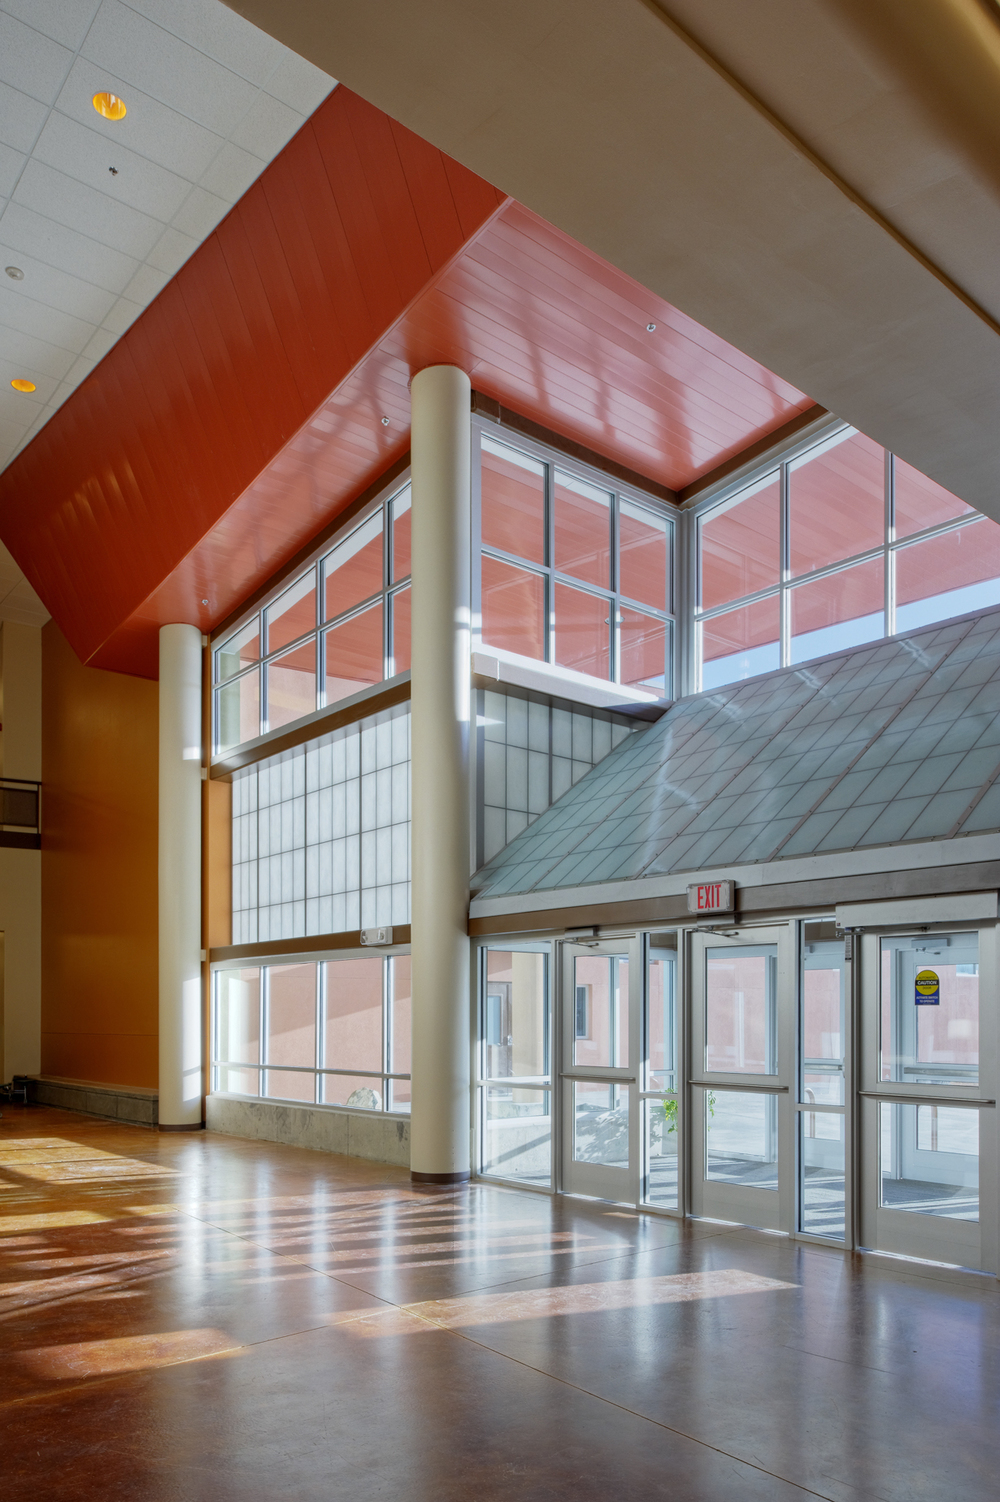 Volcano Vista High School Entrance Interior